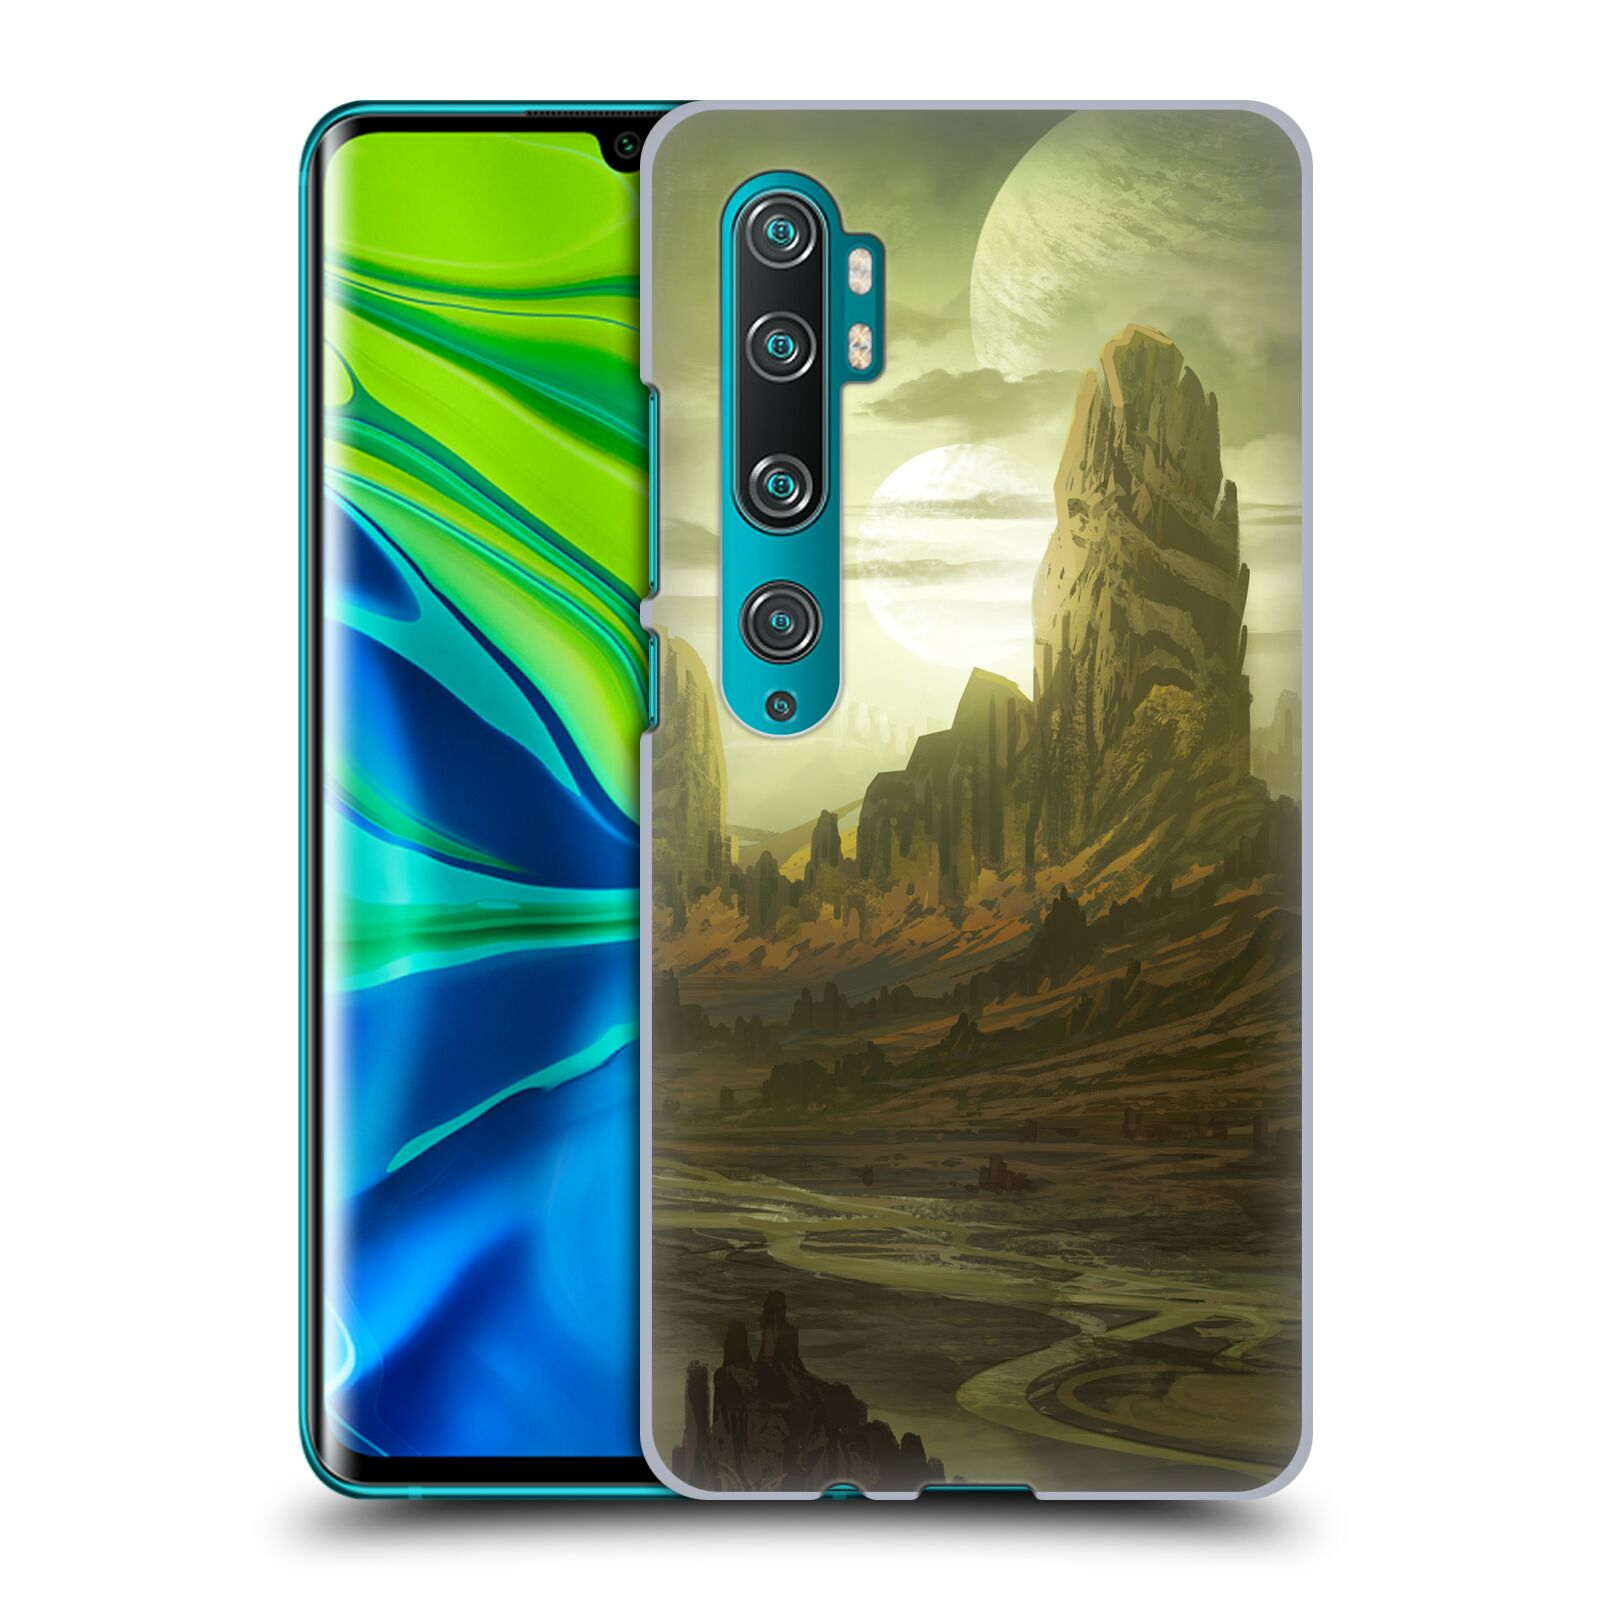 Official Alyn Spiller Environment Art Alien Landscape Case for Xiaomi Mi CC9 Pro / Mi Note 10 / Pro